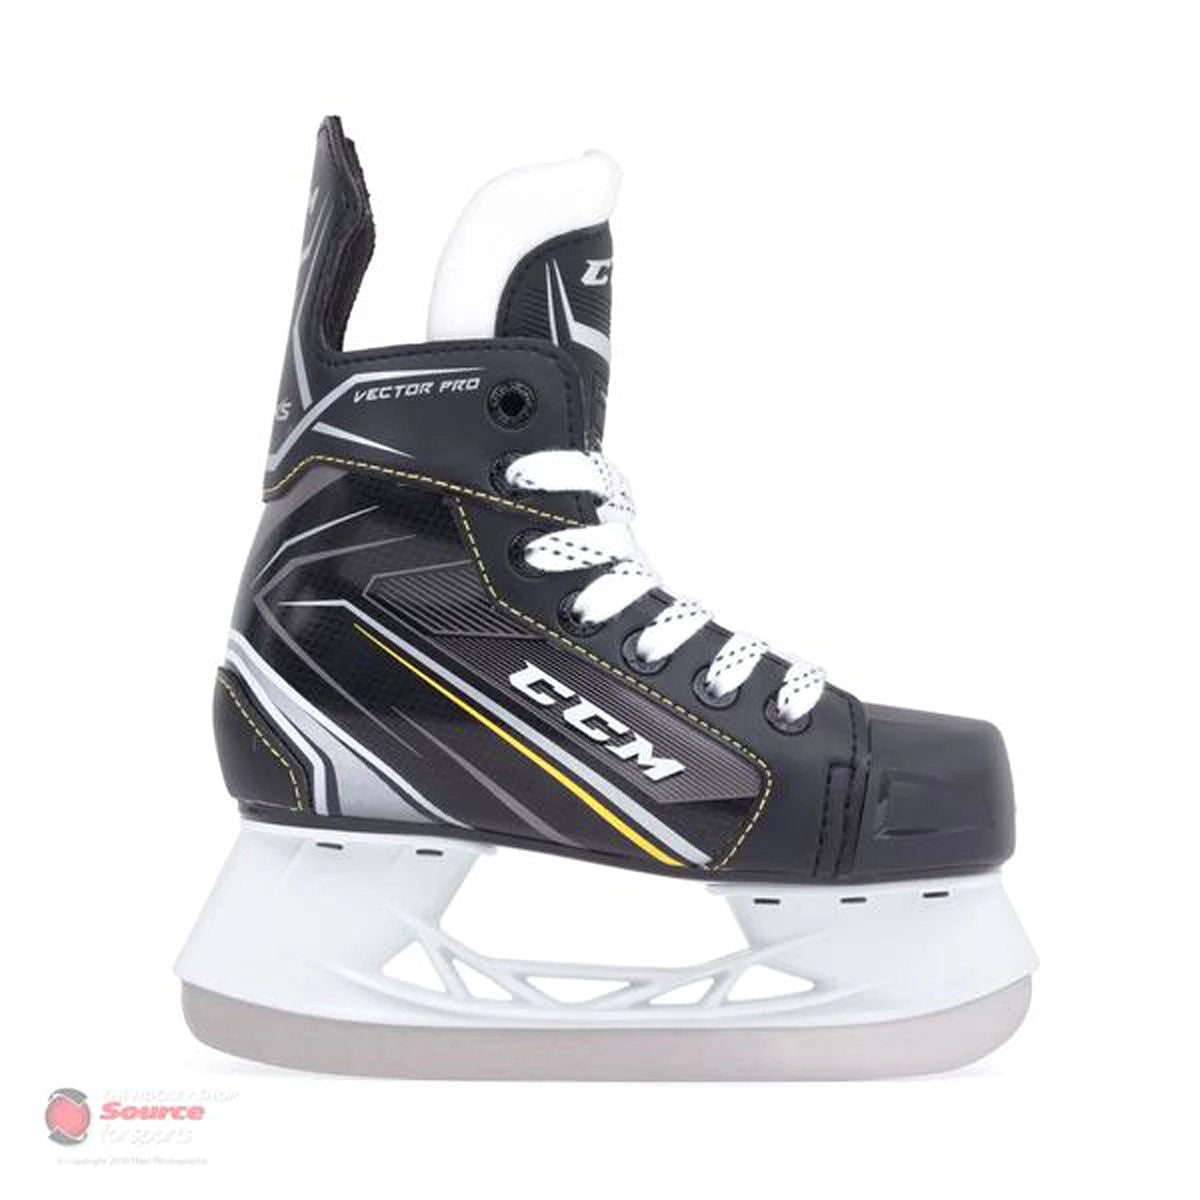 CCM Tacks Vector Pro Youth Hockey Skates (2018)